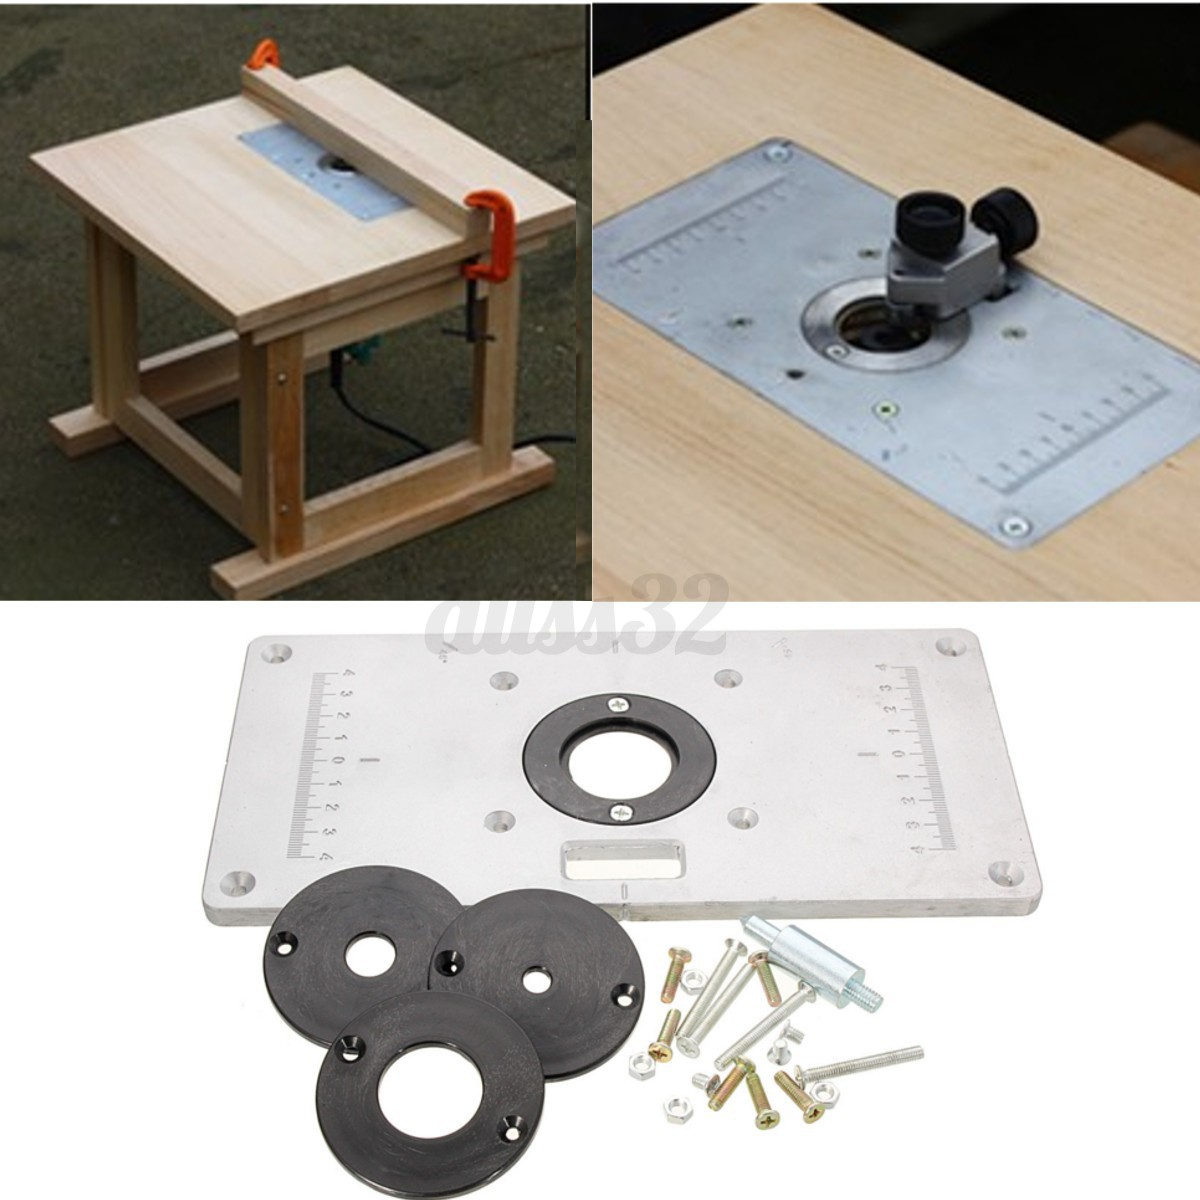 Aluminum metal sliver router table insert plate insert rings diy detail image keyboard keysfo Images